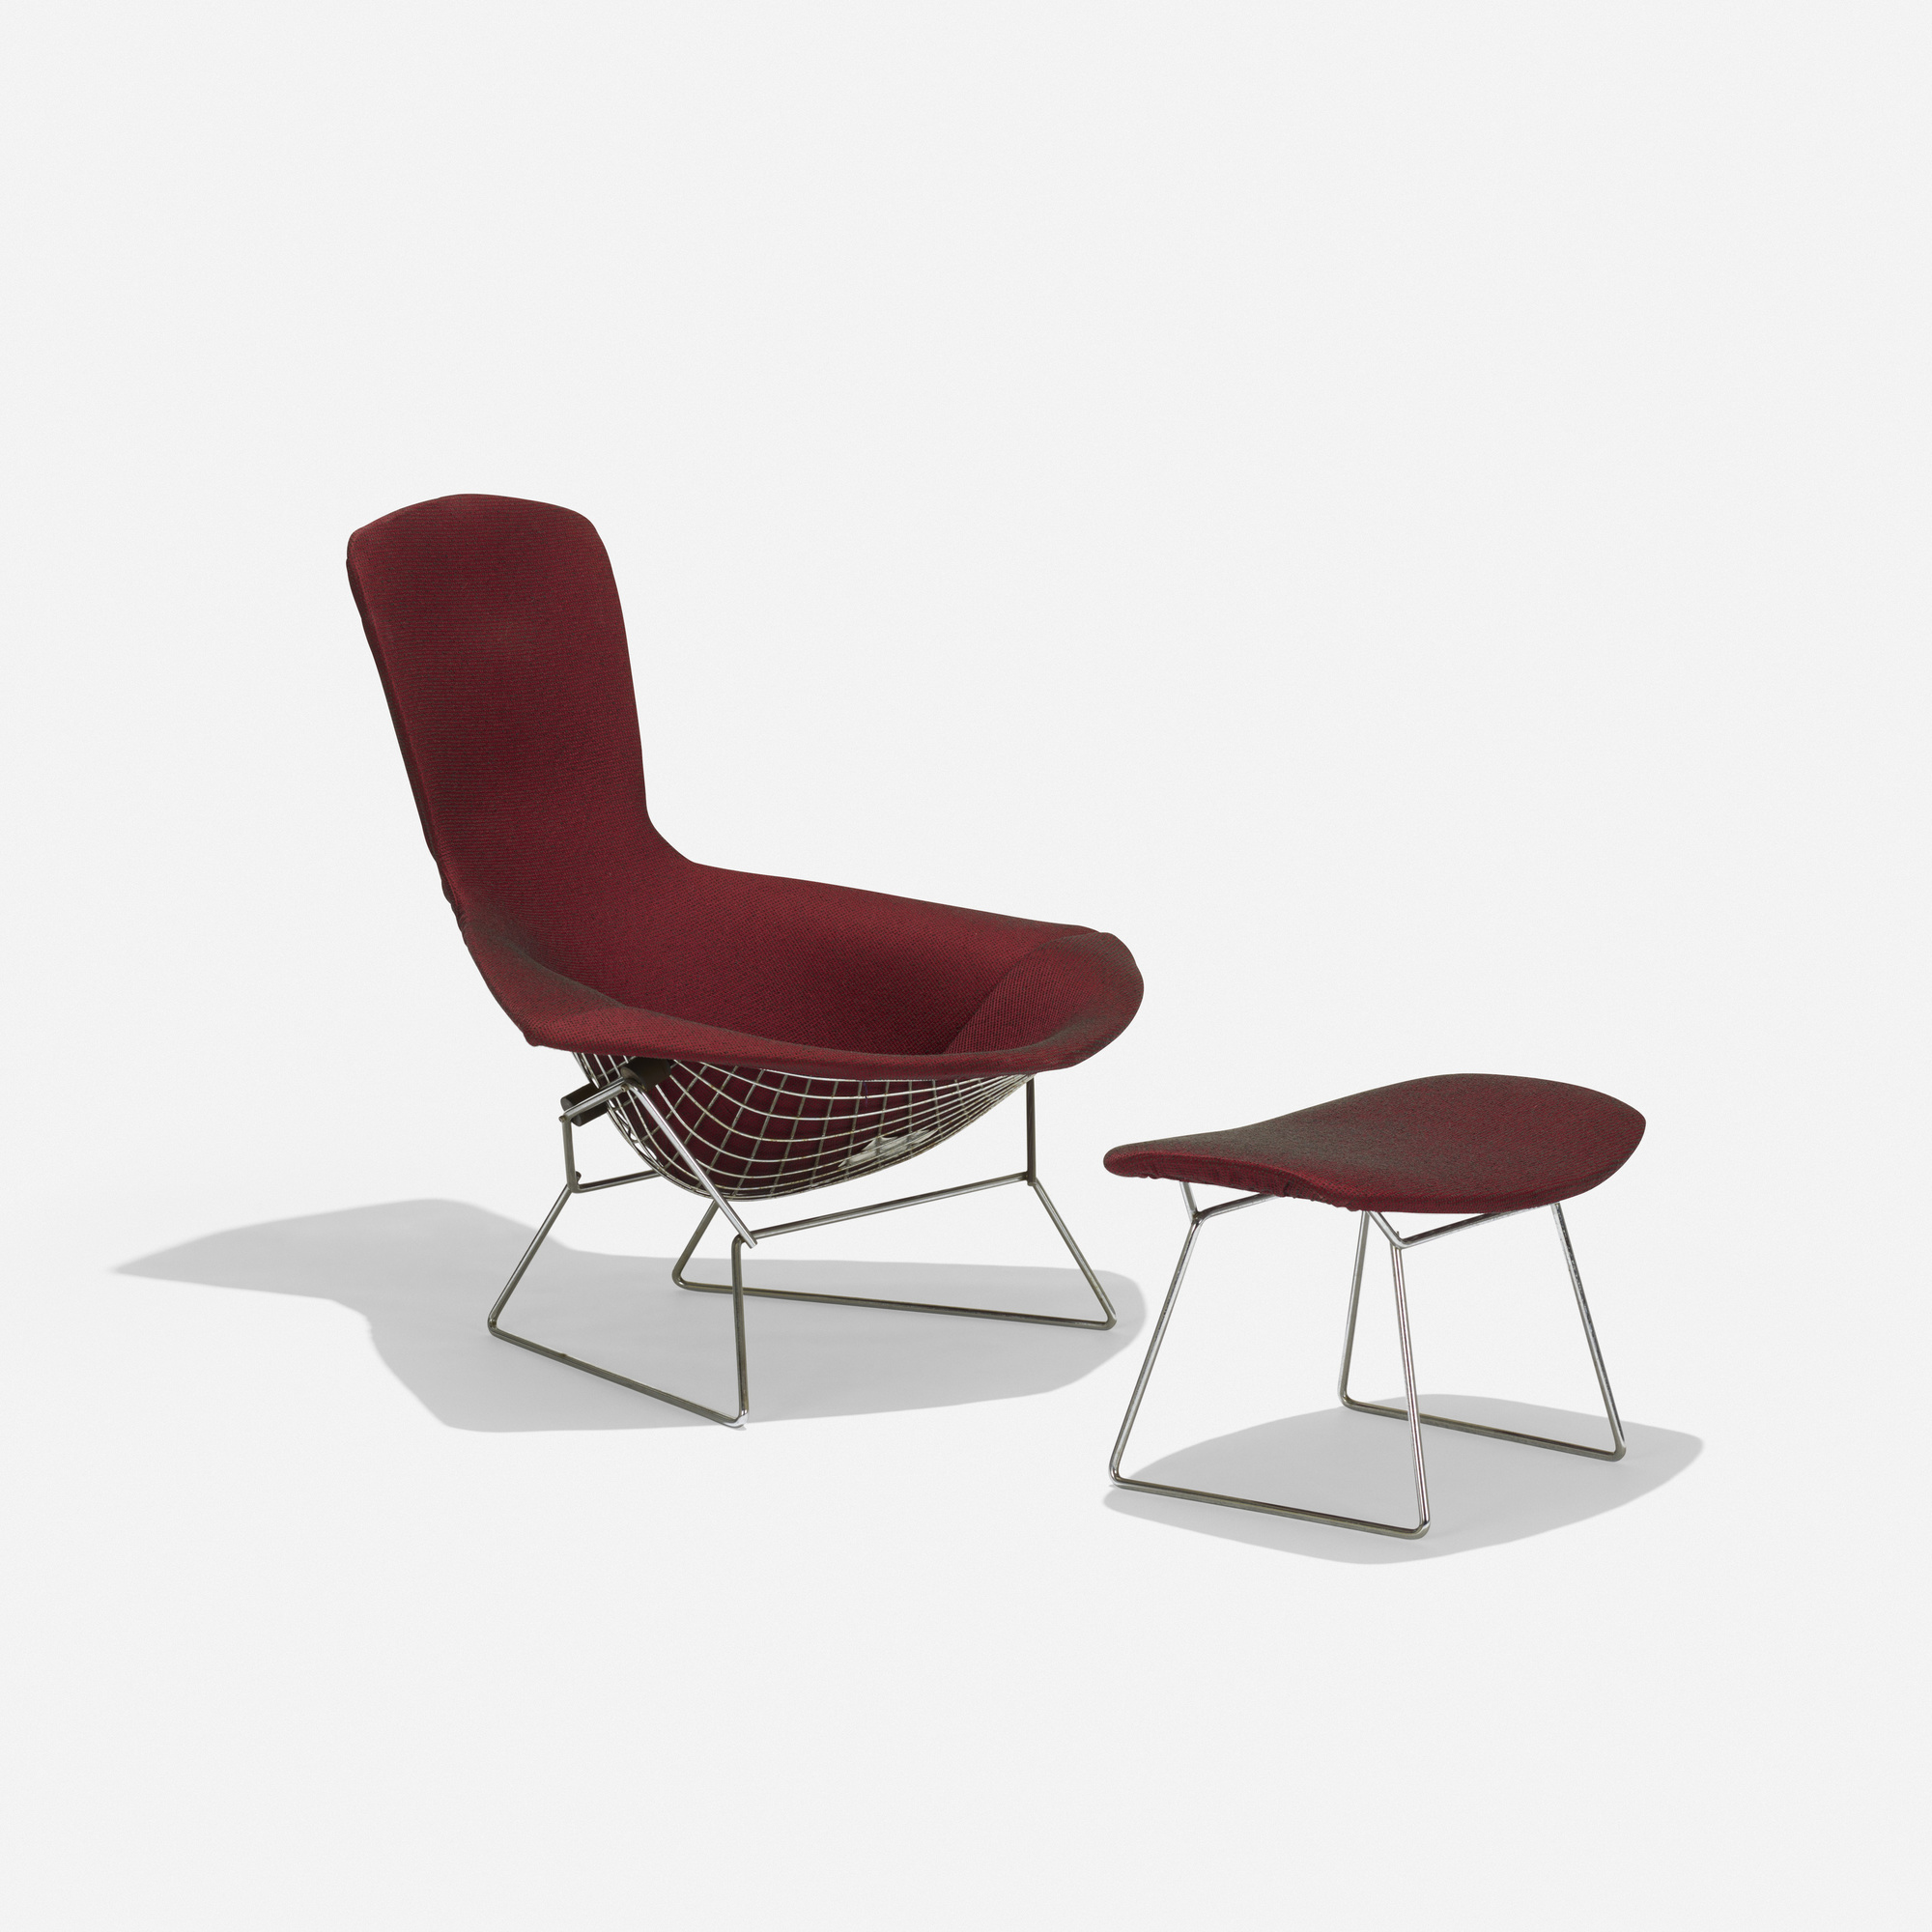 650 Harry Bertoia / Bird chair and ottoman (1 of 3) & 650: HARRY BERTOIA Bird chair and ottoman u003c American Design 20 ...